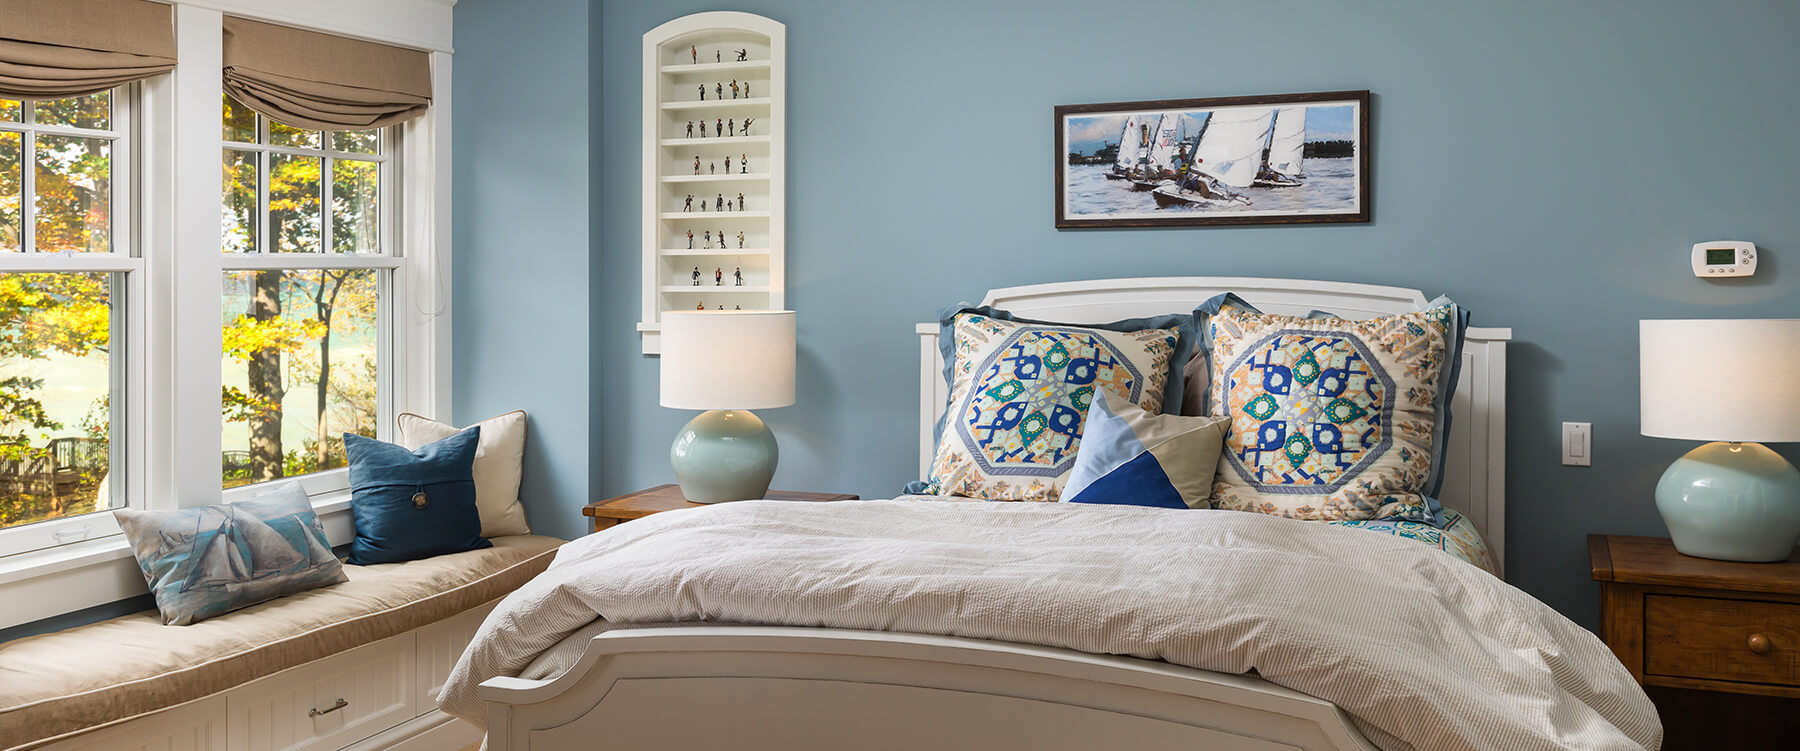 bedroom at shingle style cottage